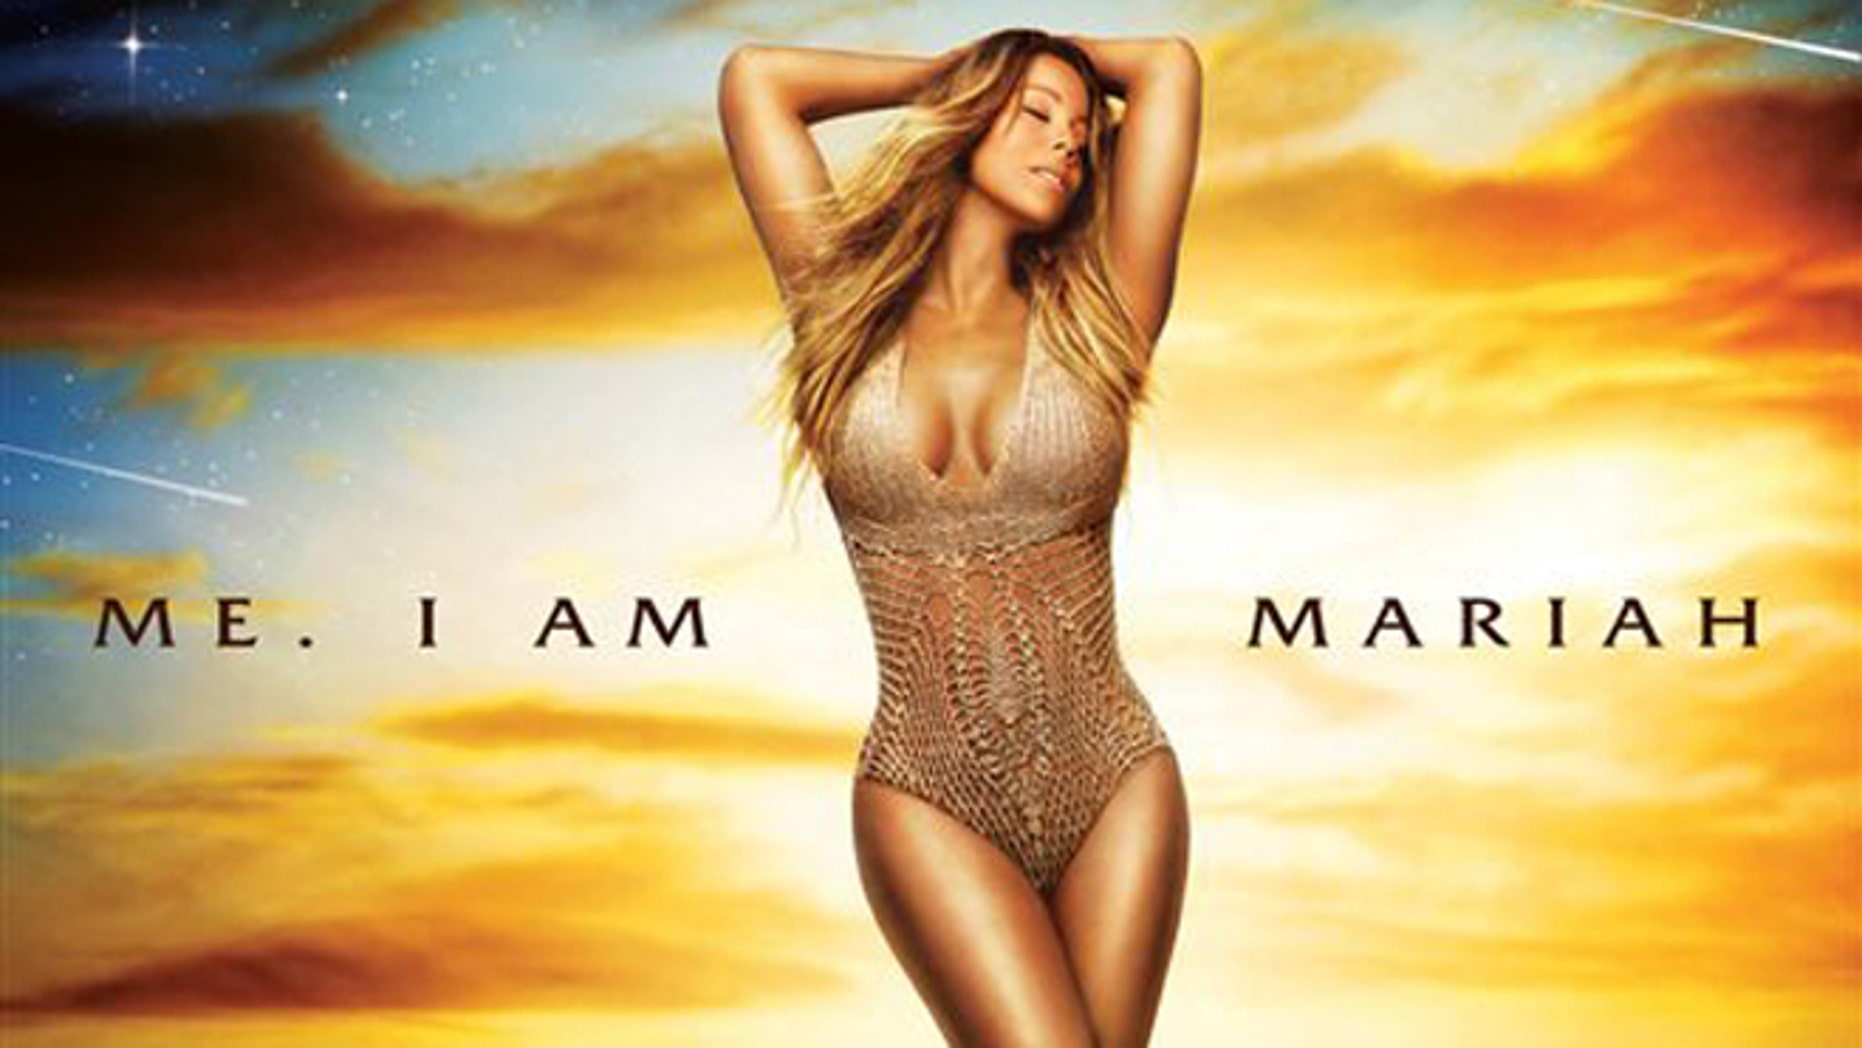 """This CD cover image released by Def Jam Records shows """"Me. I Am Mariah⦠The Elusive Chanteuse"""" by Mariah Carey. (AP Photo/Def Jam Records)"""